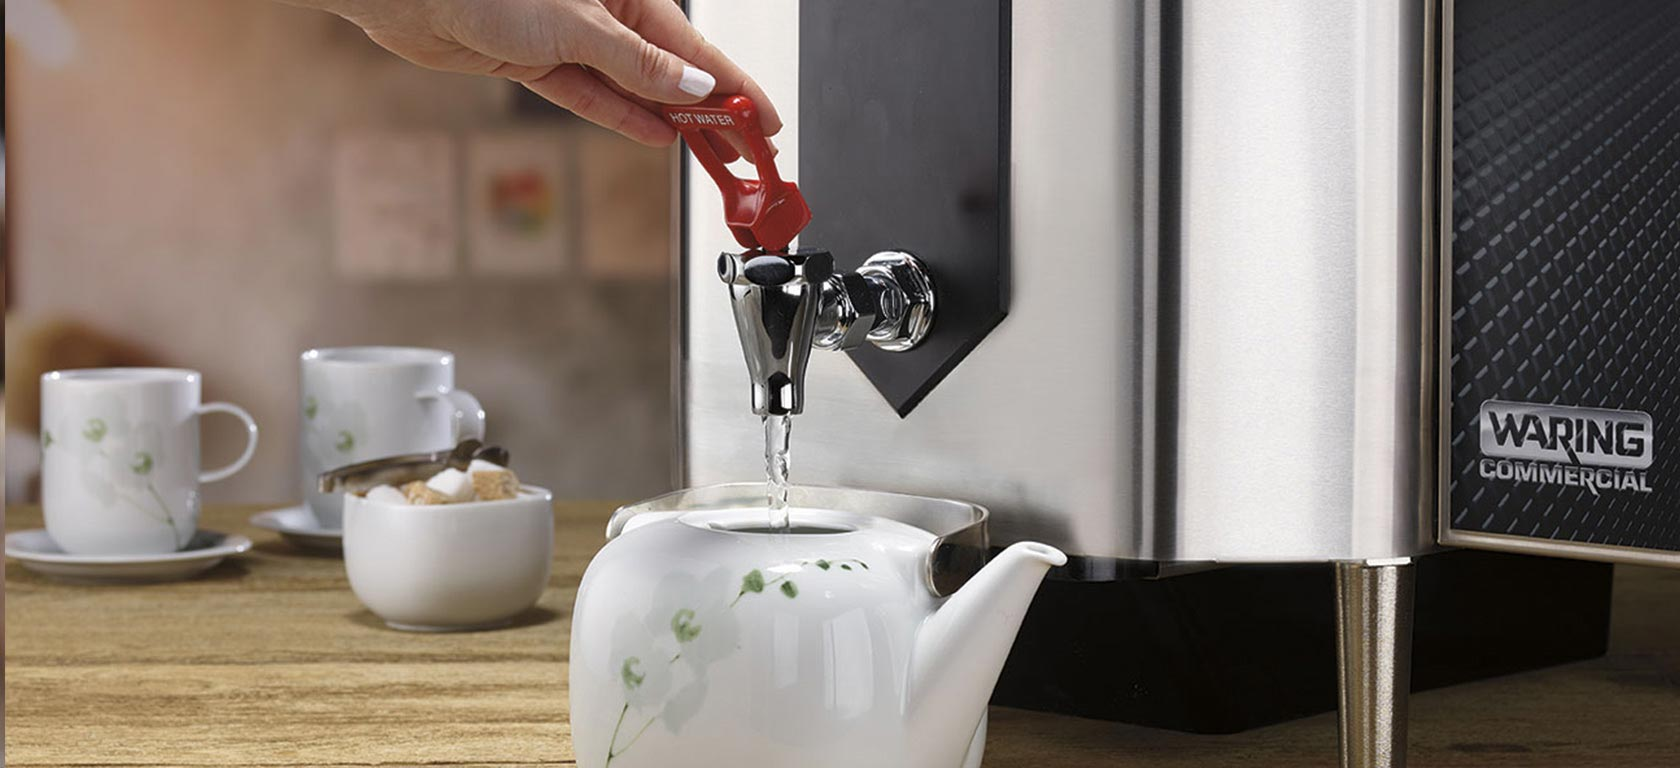 Chrome-finished Waring coffee maker pours hot water into a ceramic teapot.